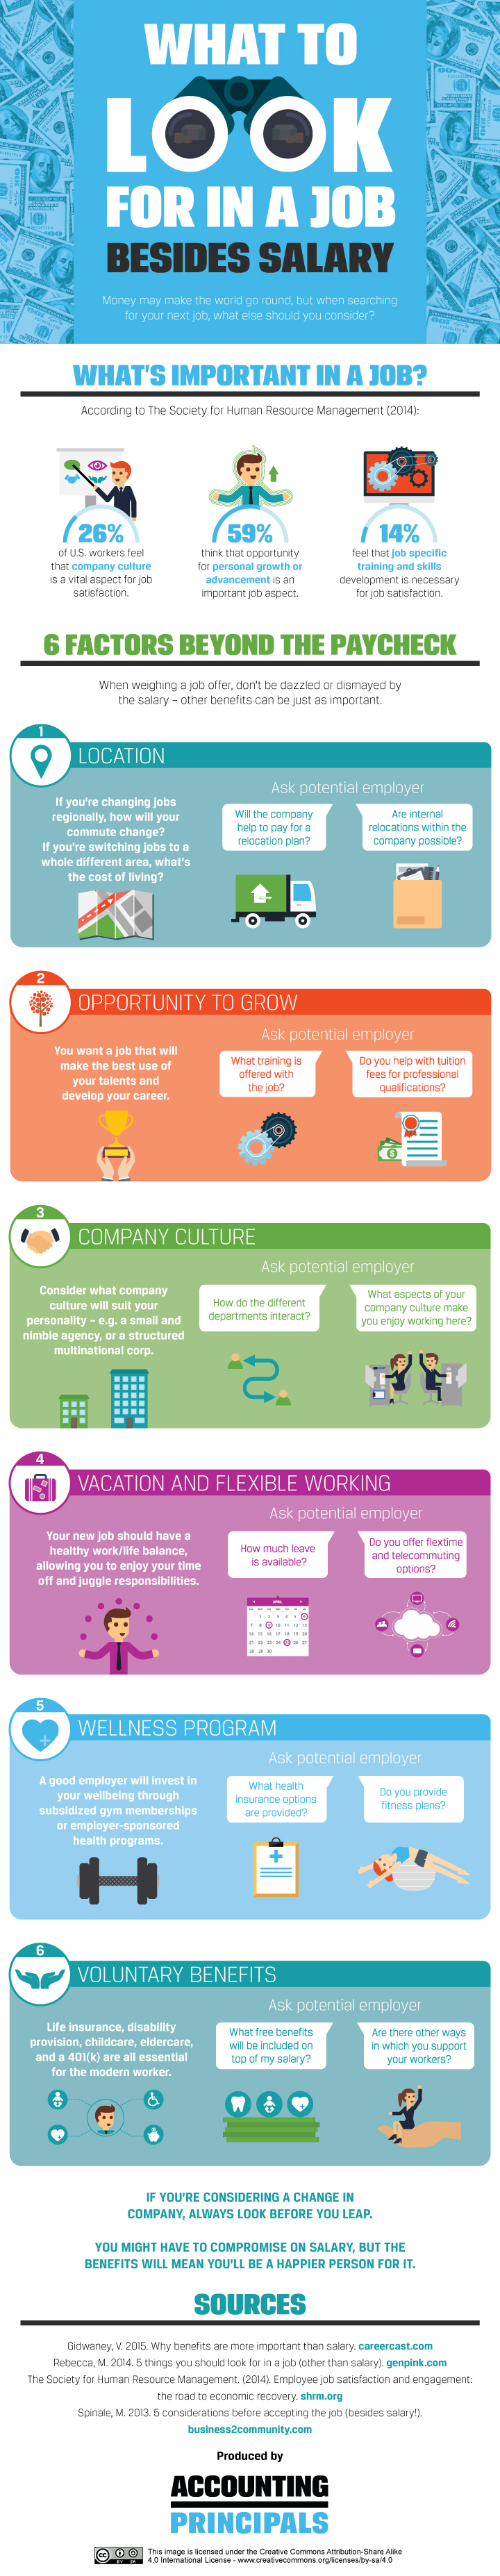 What to look for in a job besides salary infographic: location, work culture, benefits, growth